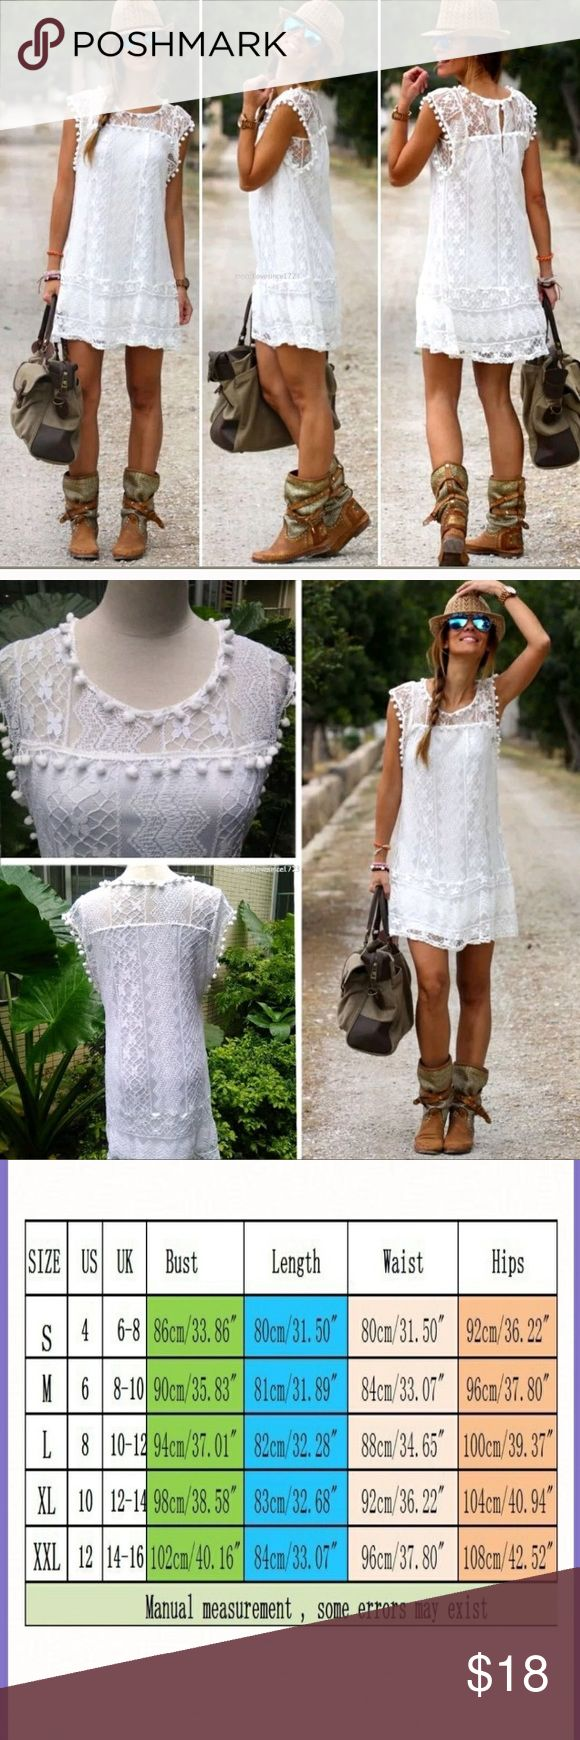 Women's Sleeveless Summer Sheath Dress Beautiful white lace dress with nylon lining. Has fun Pom Pom details along the edges. Would make a good bathing suit cover up! Dresses Mini